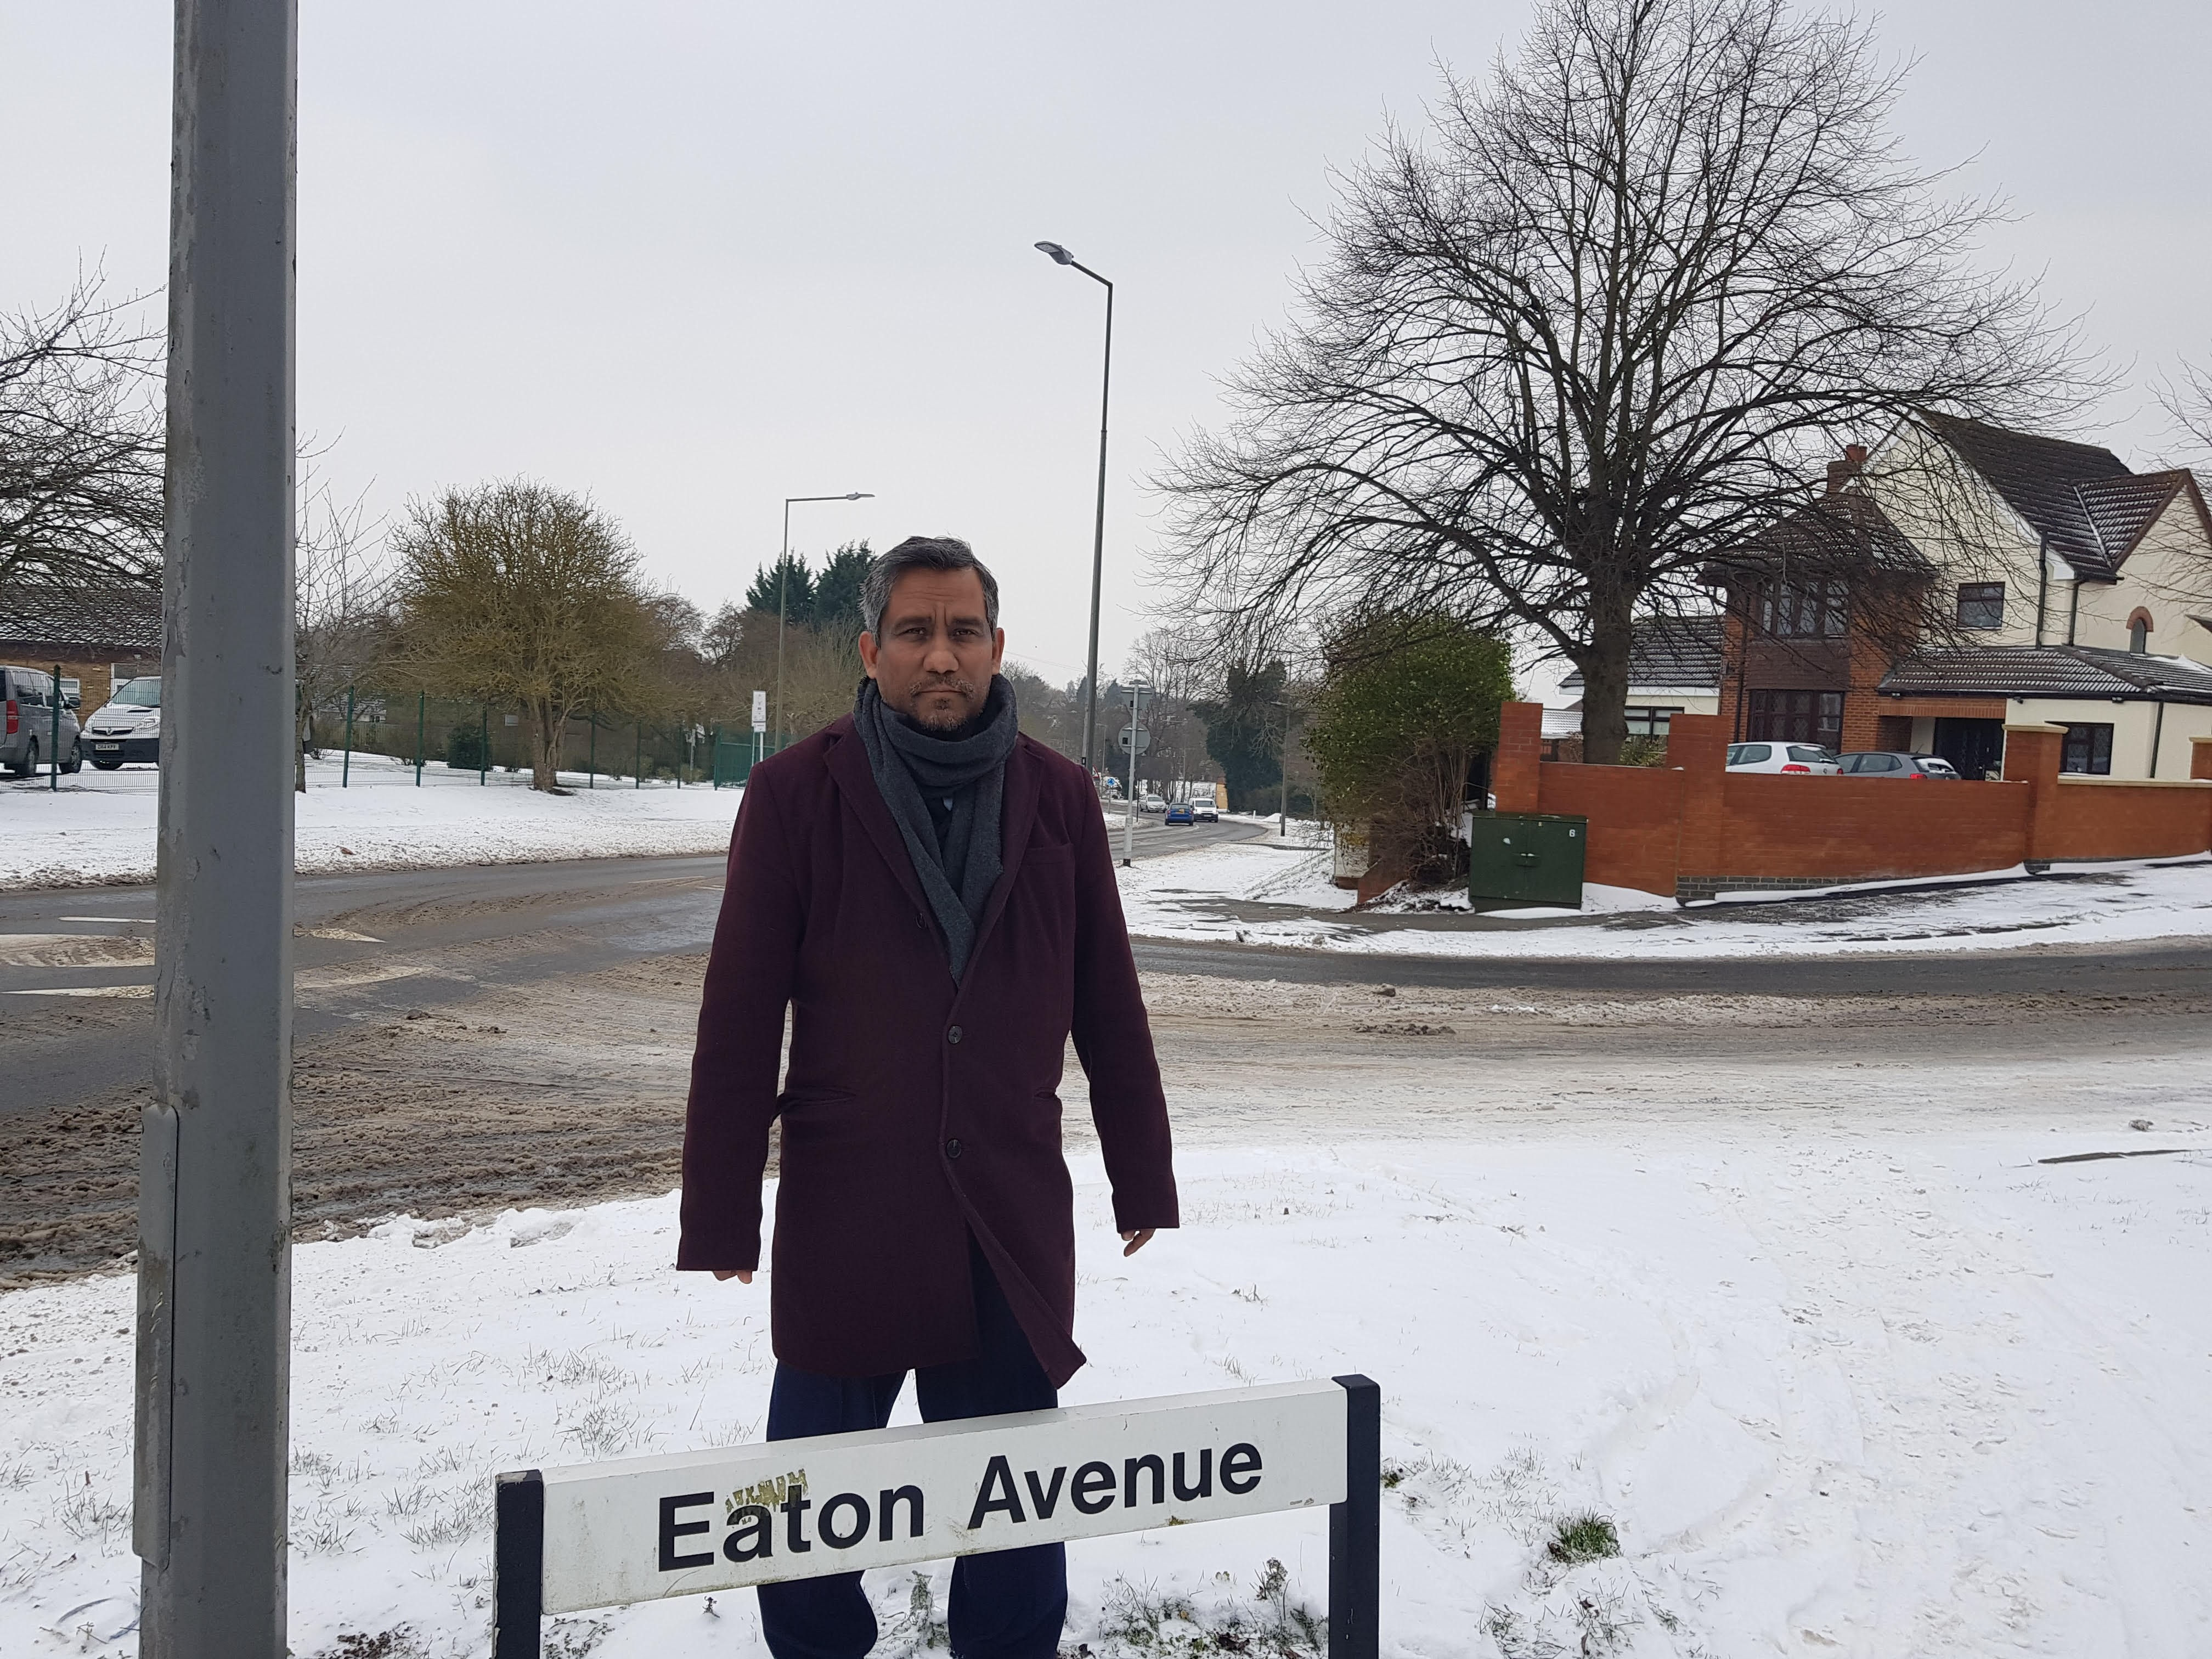 Cllr_Mohammed_Khan_at_Eaton_Avenue.jpg